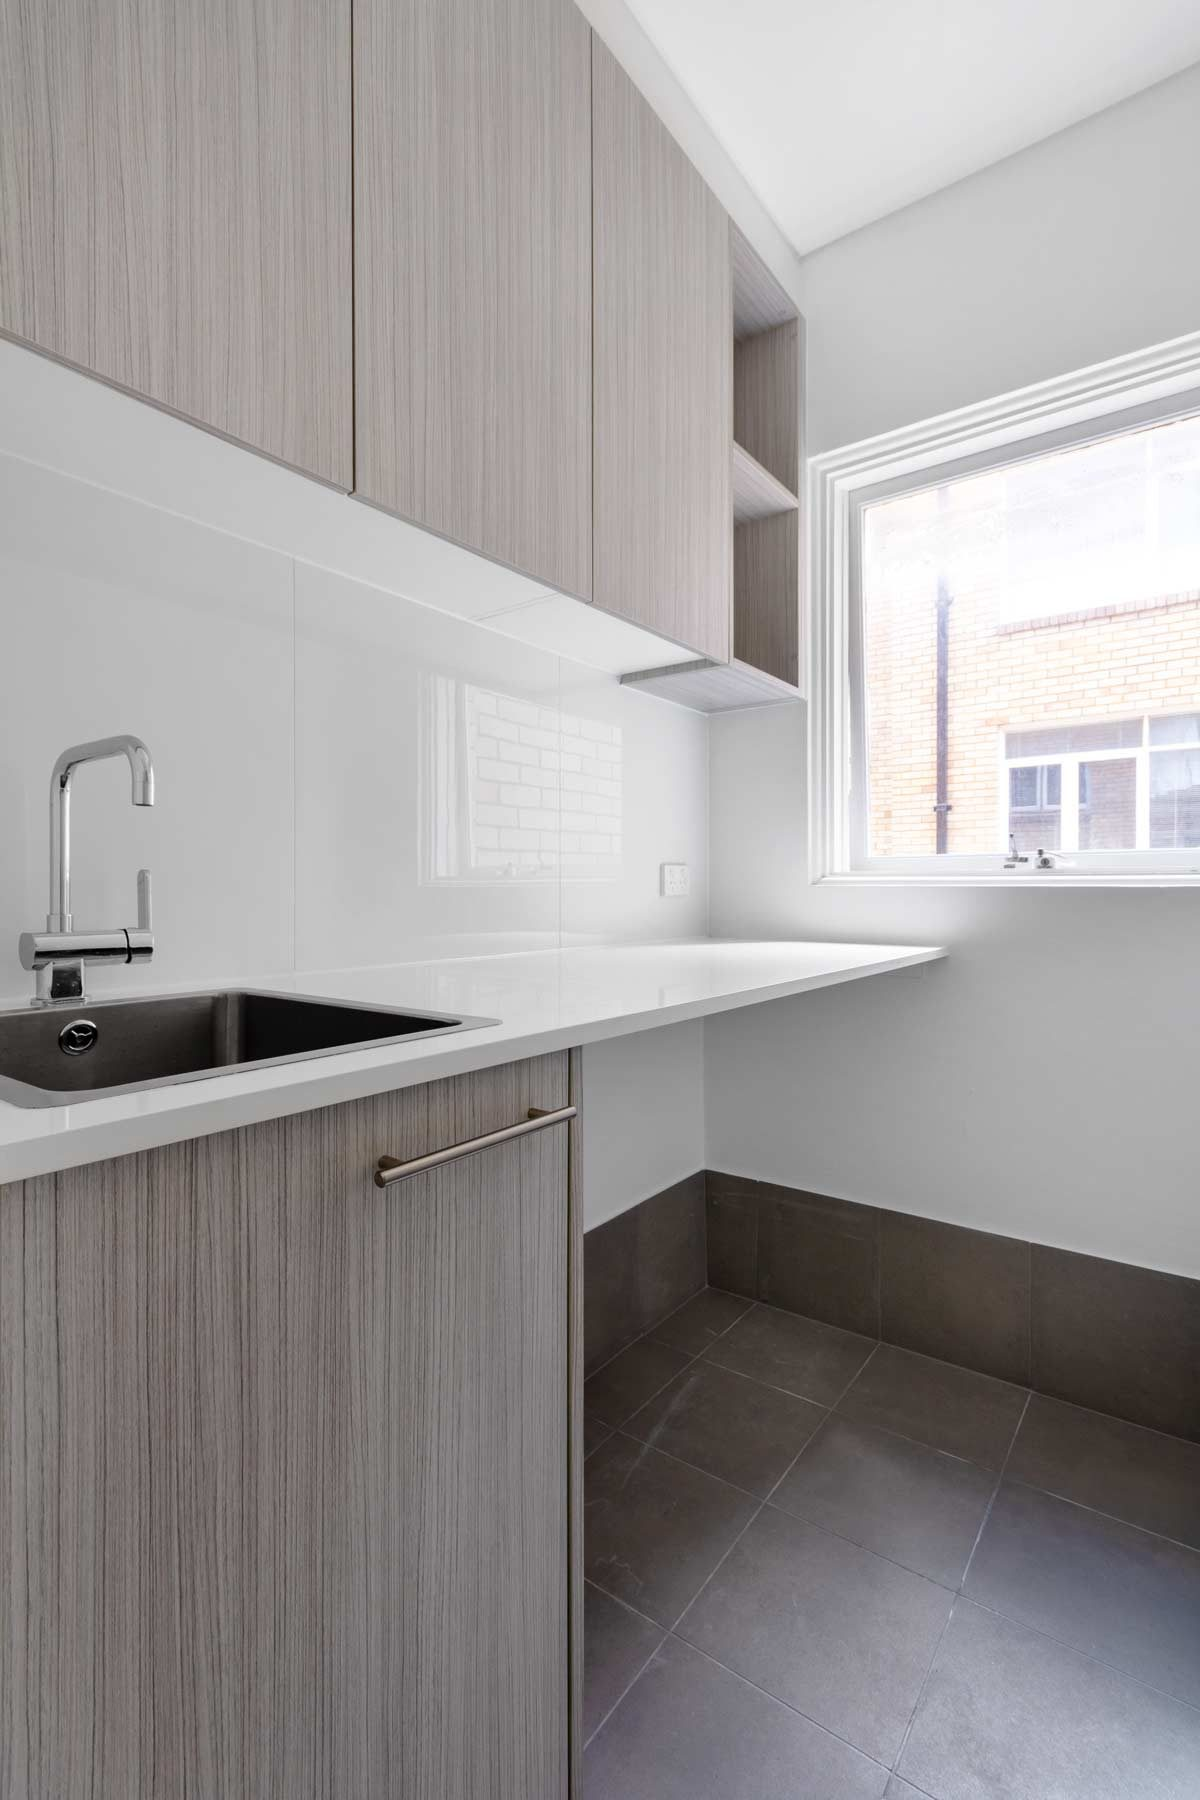 Apartment laundry renovation in Summer Hill featuring Laminex cabinetry, Caroma tapware and Abey sink.